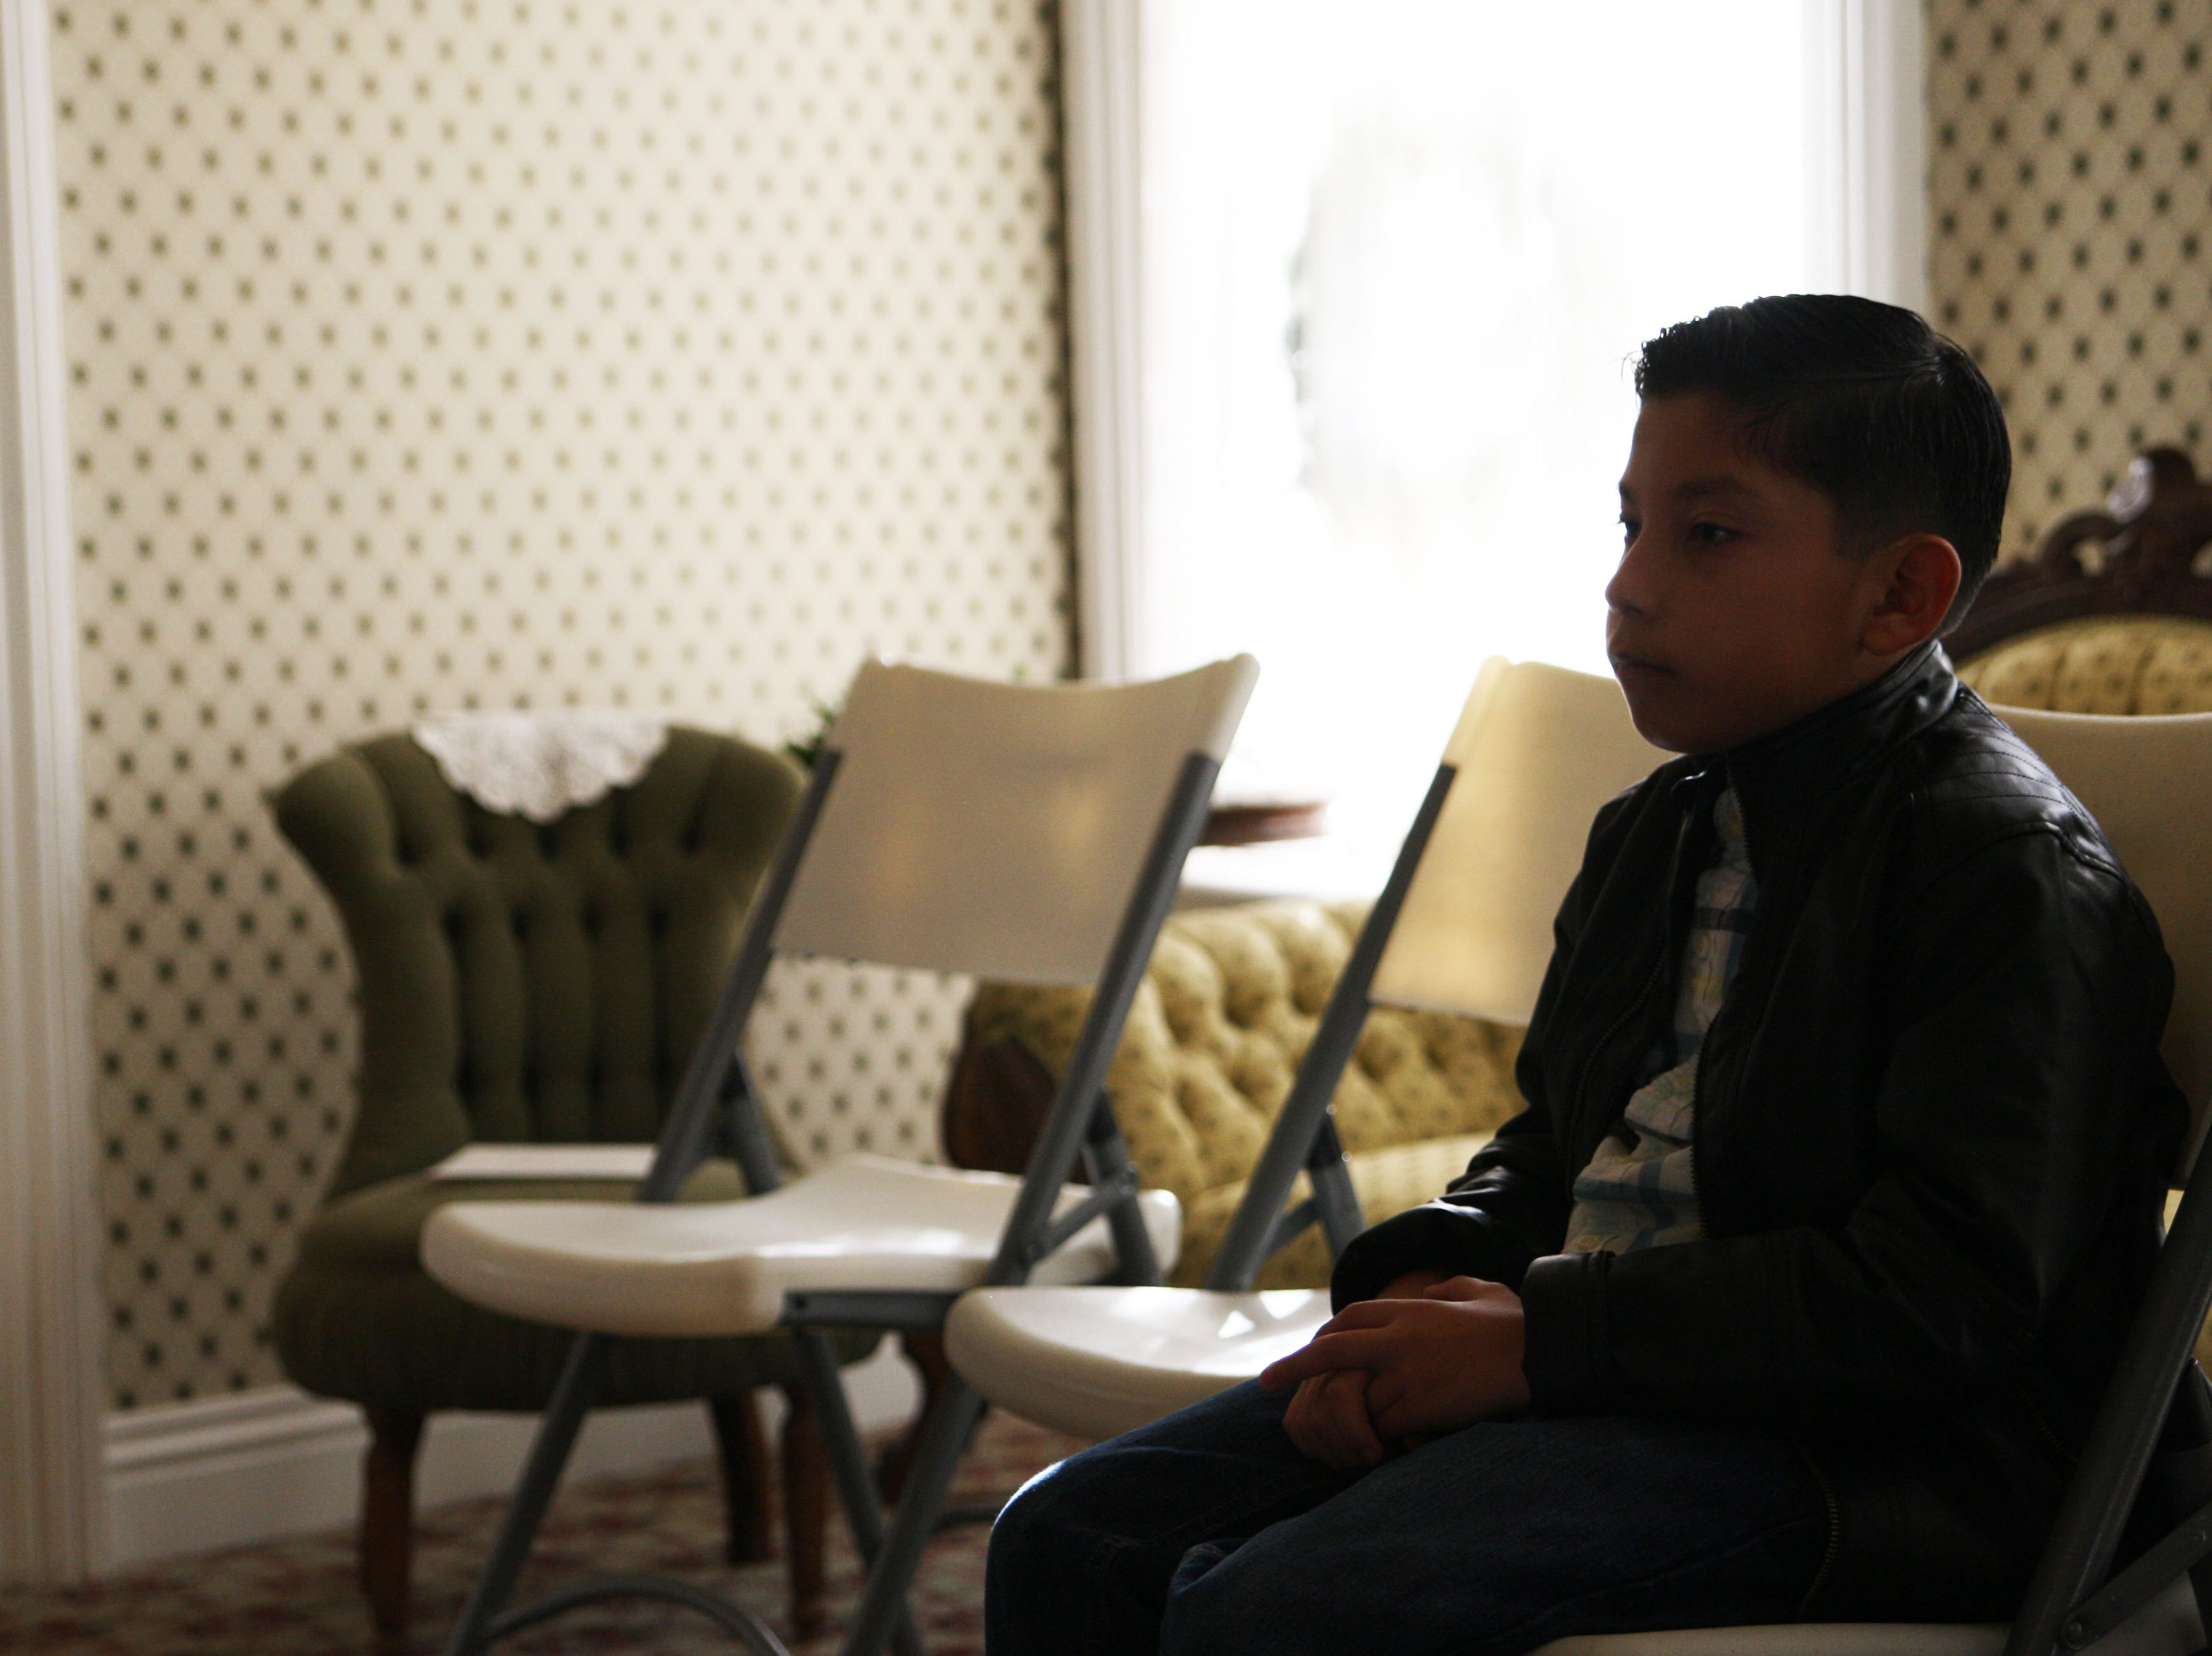 A boy sits and listens to the Christmas music in the Harvey house.